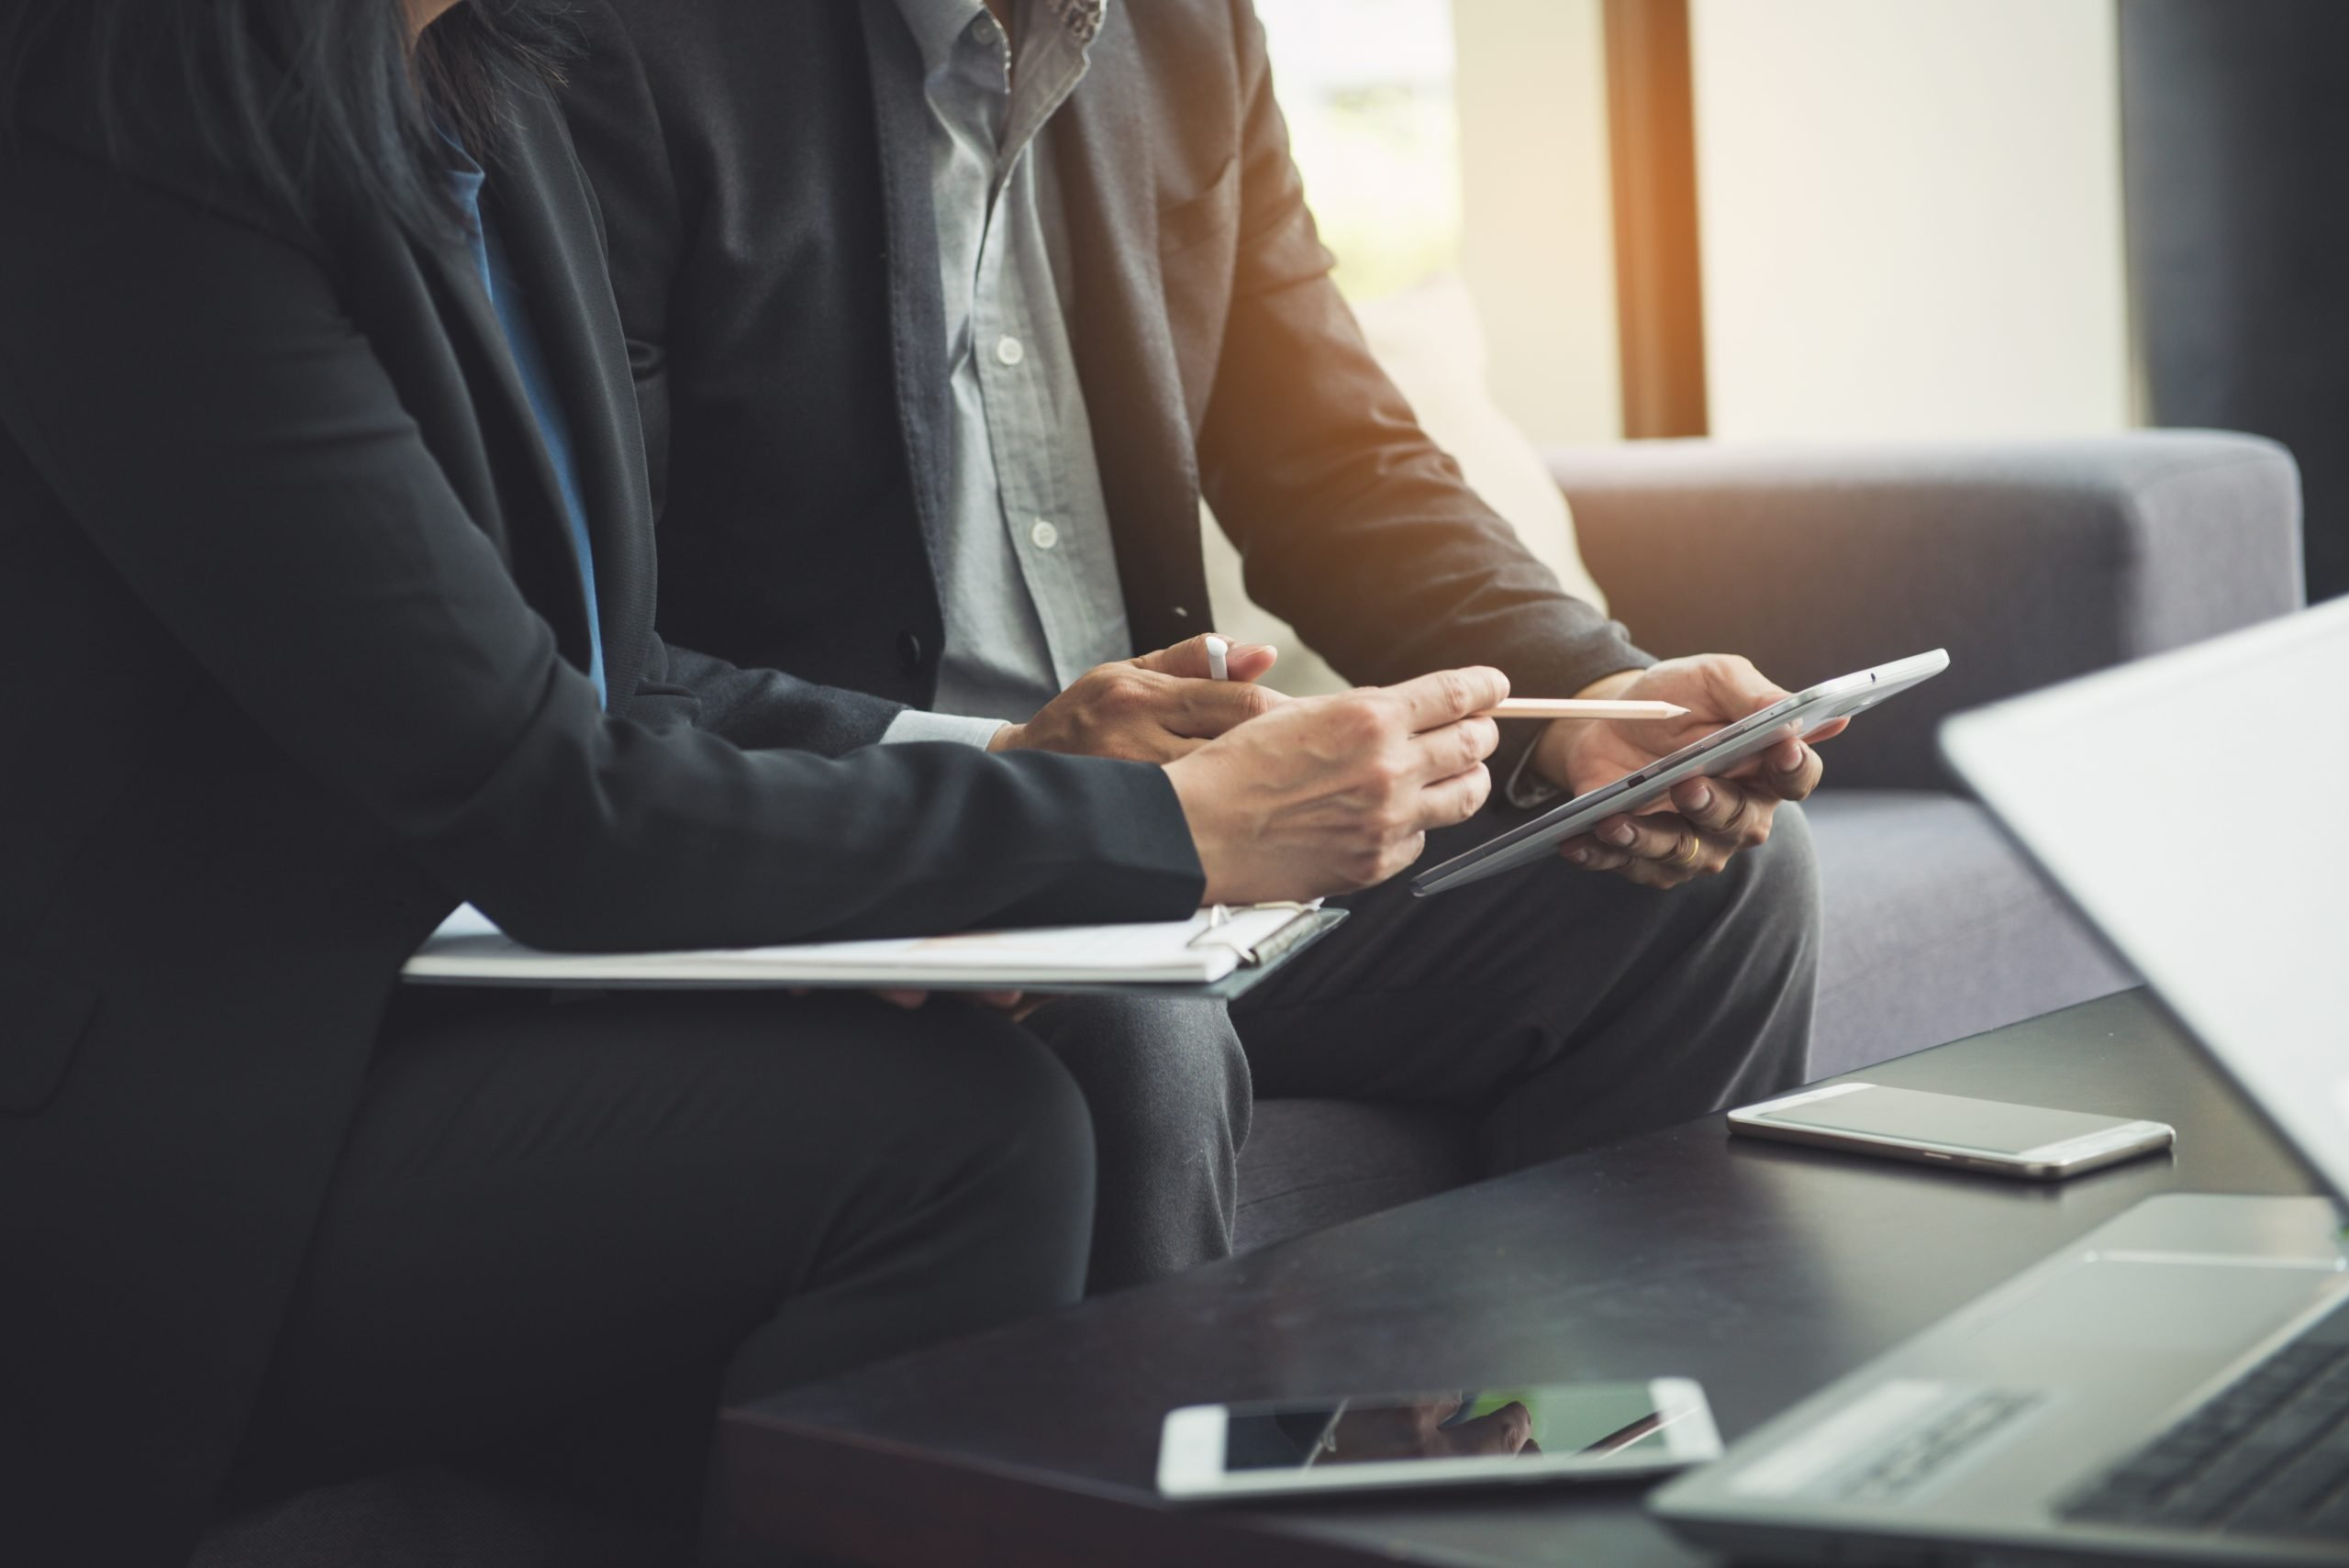 The Benefits of Screening Ultimate Beneficial Owner (UBO)